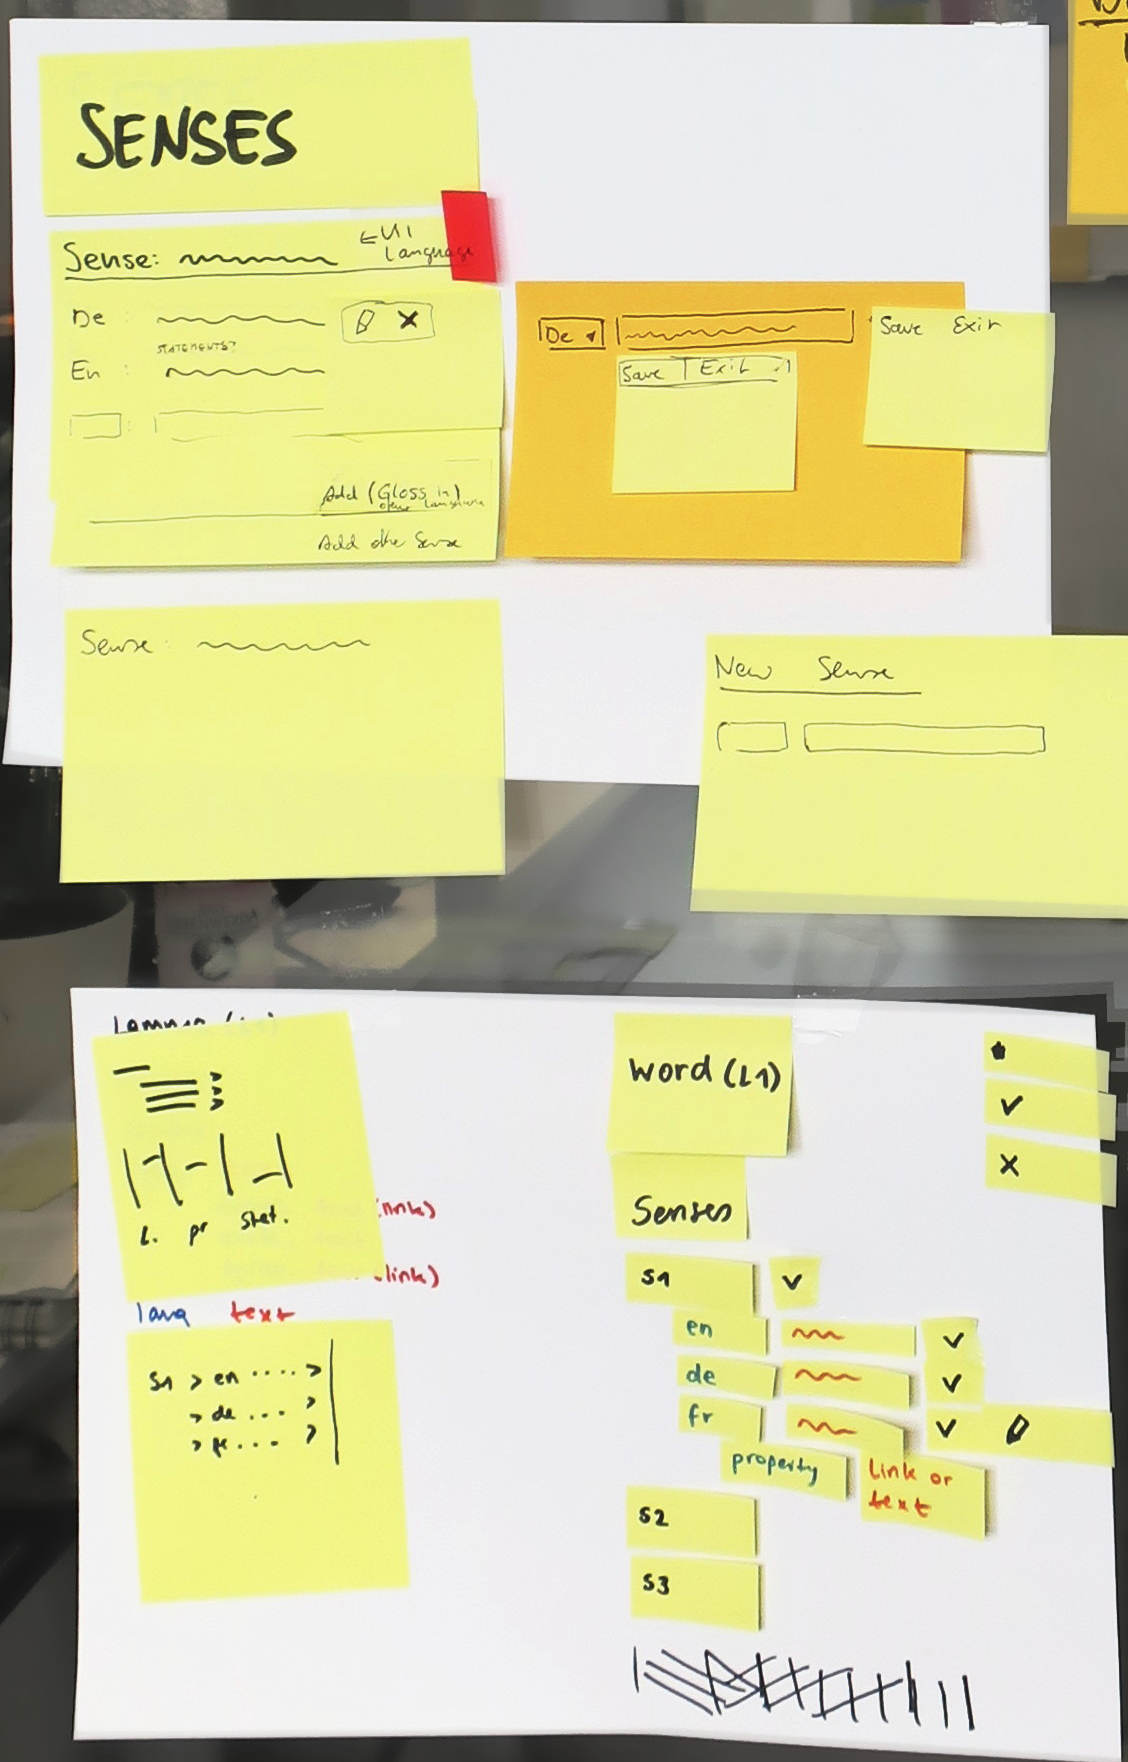 a representation of an interface consisting mainly of sticky notes